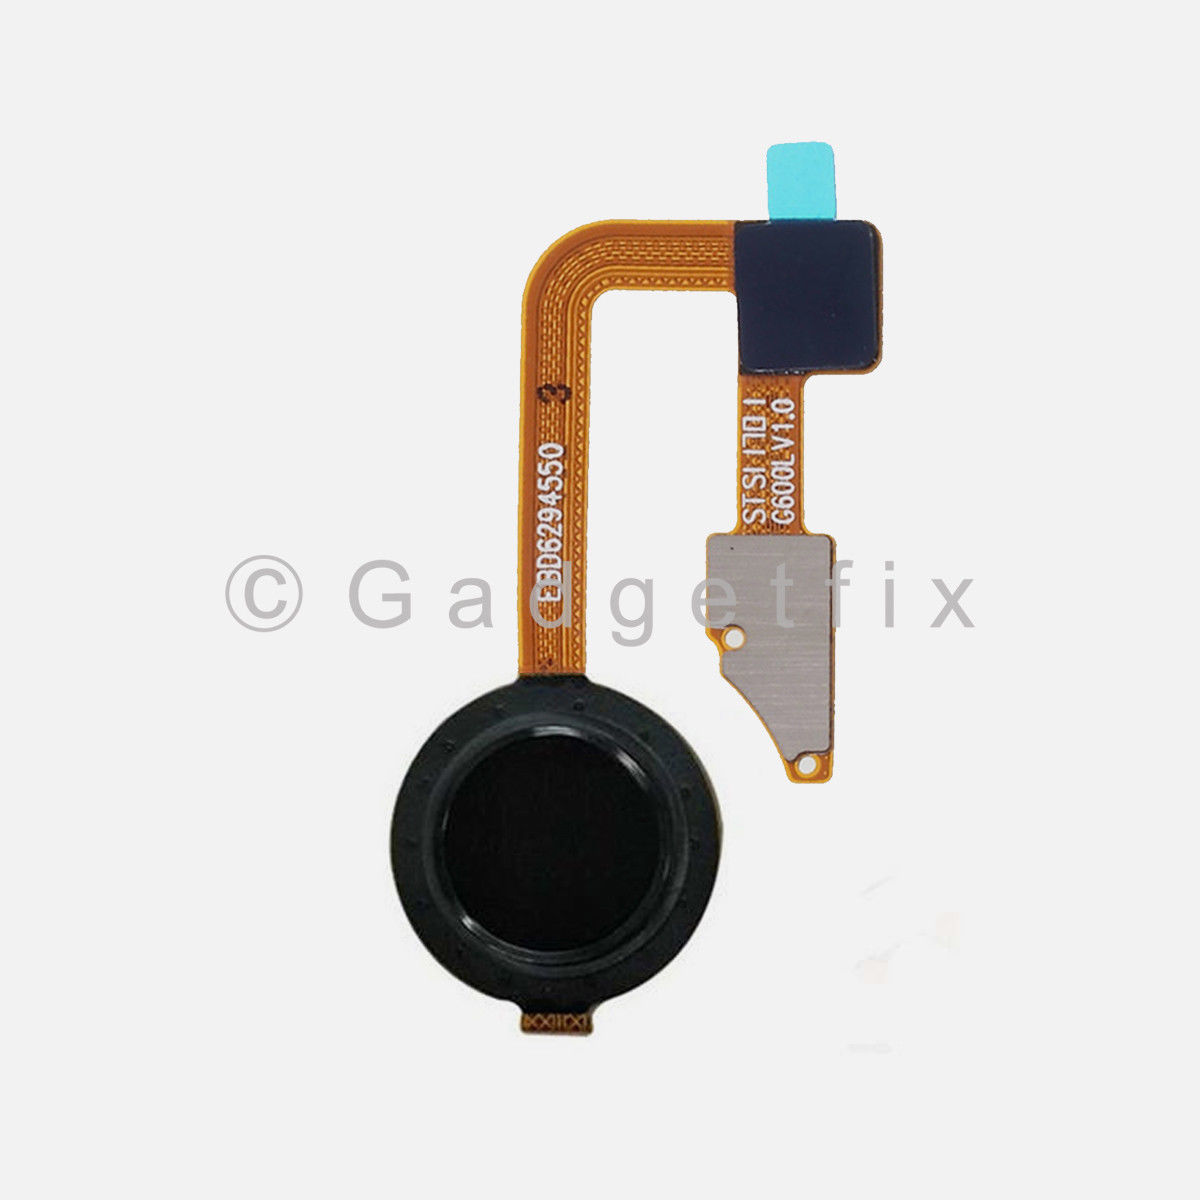 OEM LG G6 H870 H871 H872 Power Button Home Button Fingerprint Sensor Flex Cable